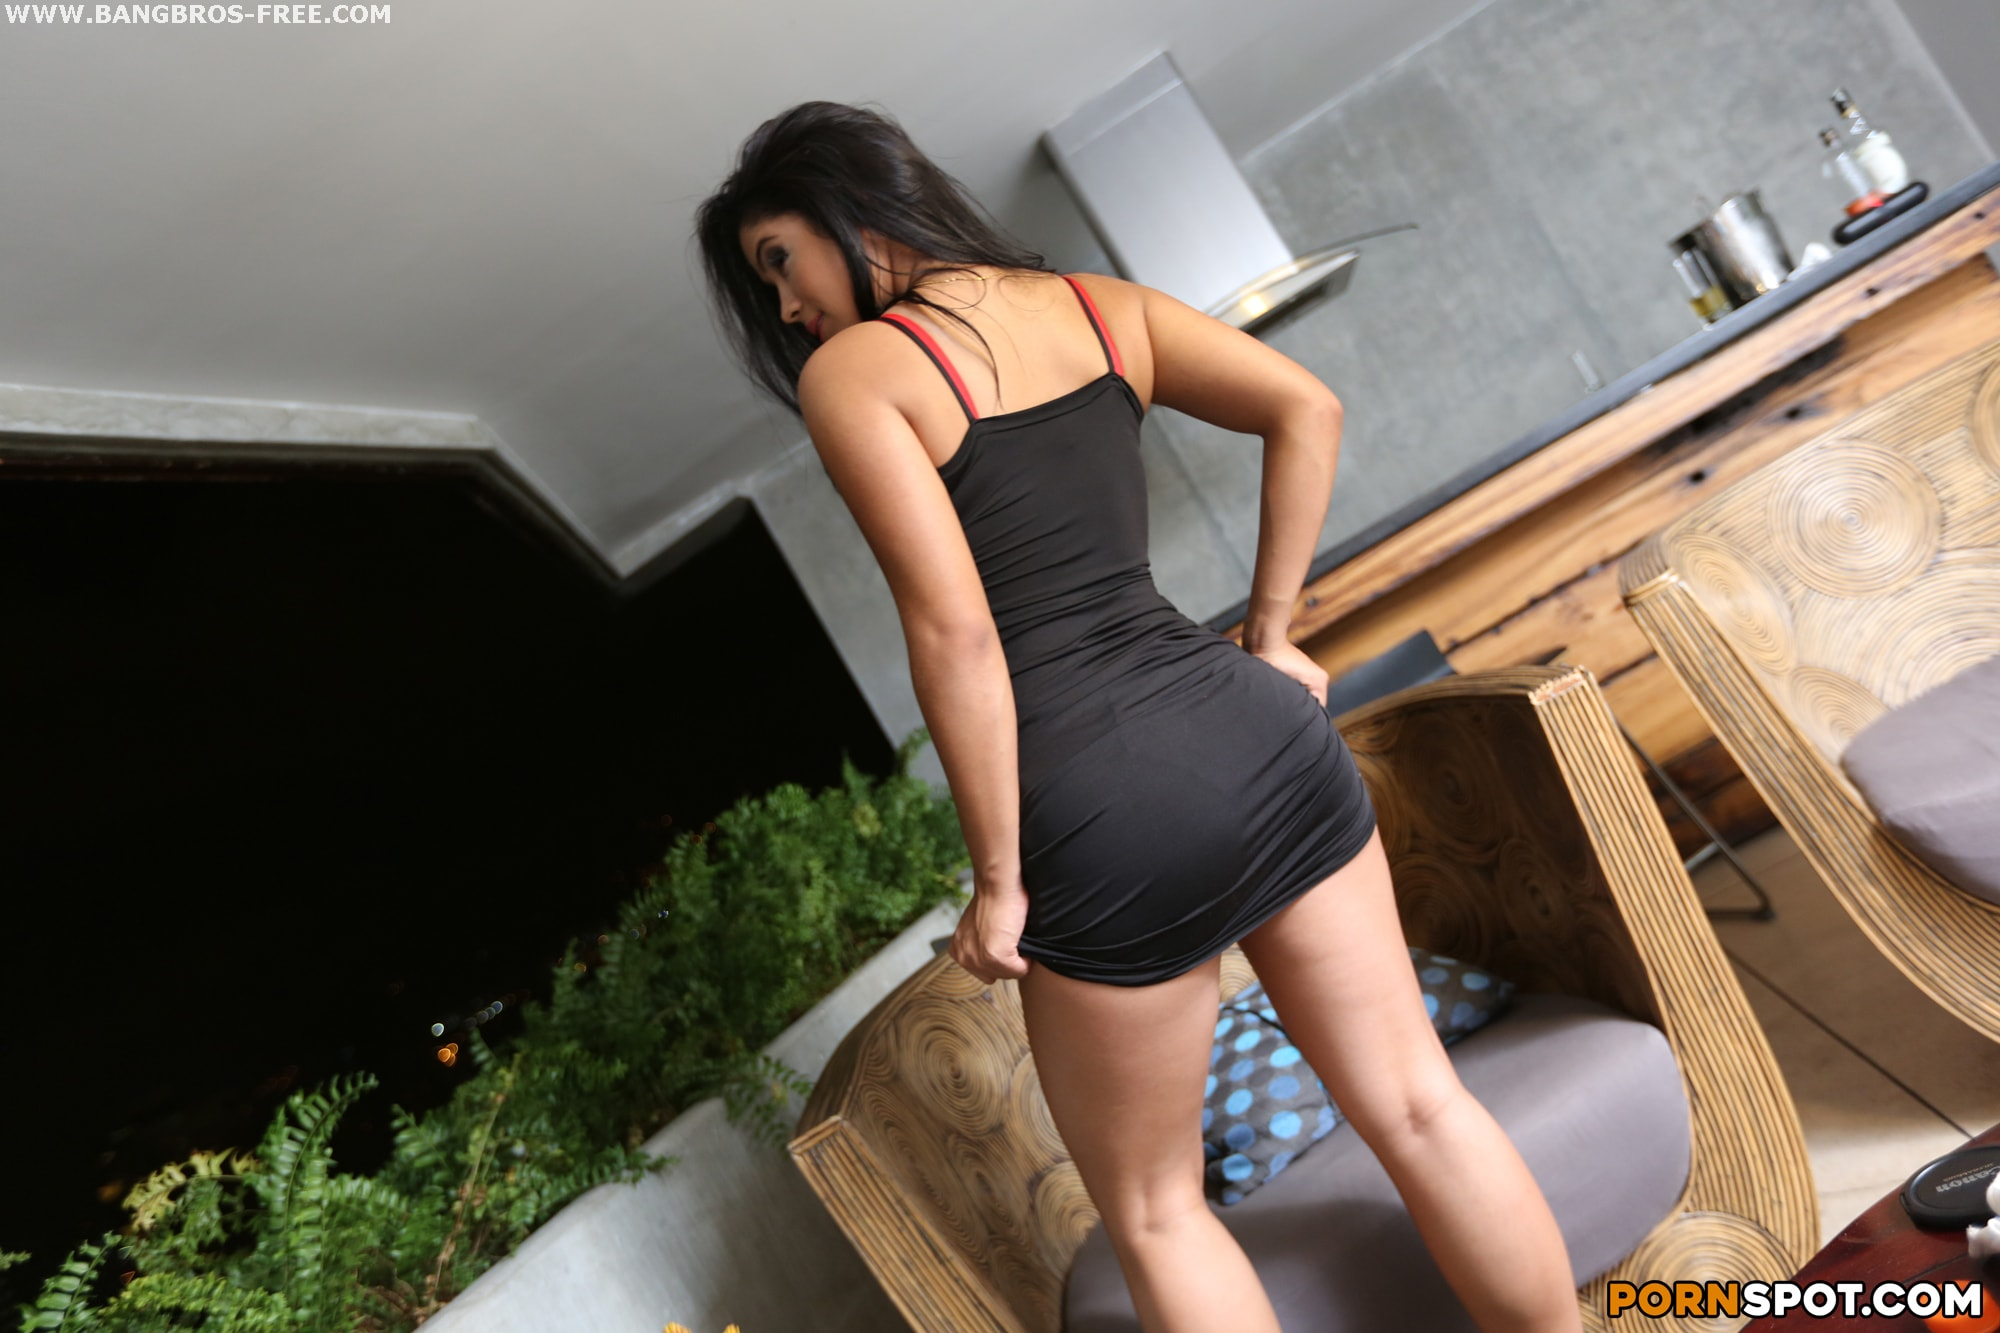 A Colombian Monster Porn ▷ emma in a columbian monster (photo 100) | bangbros